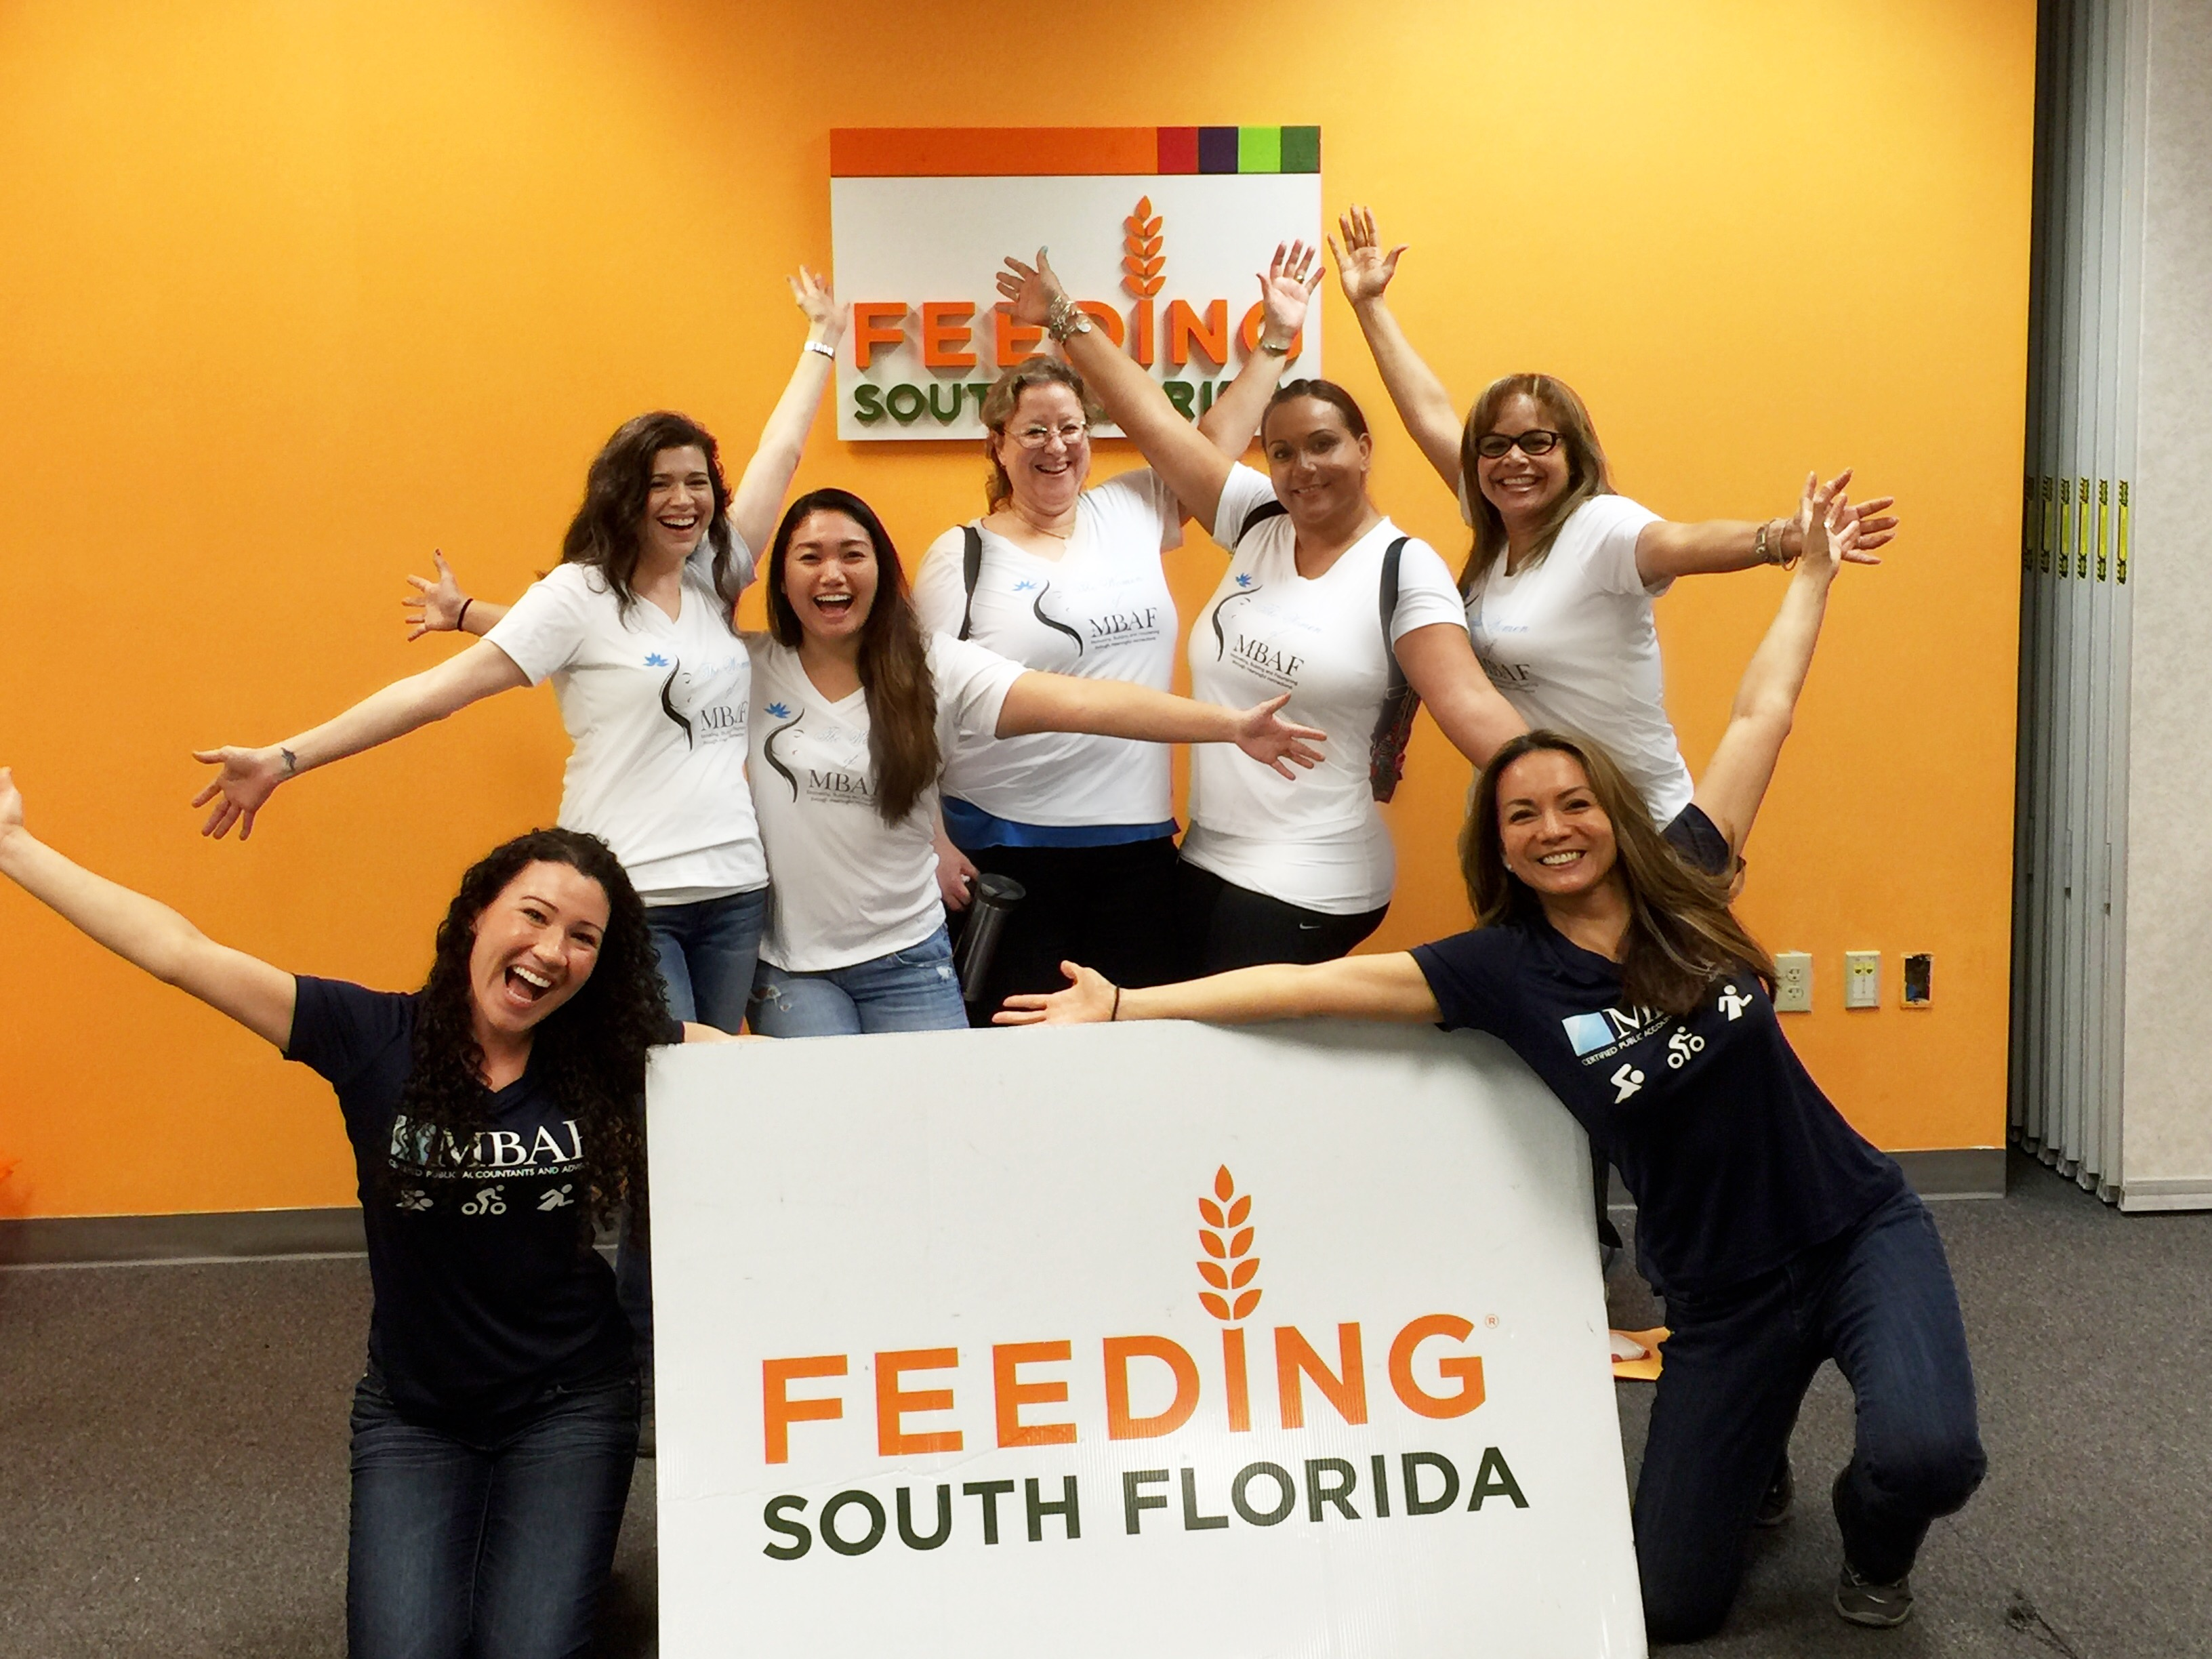 The team volunteering at Feeding South Florida!